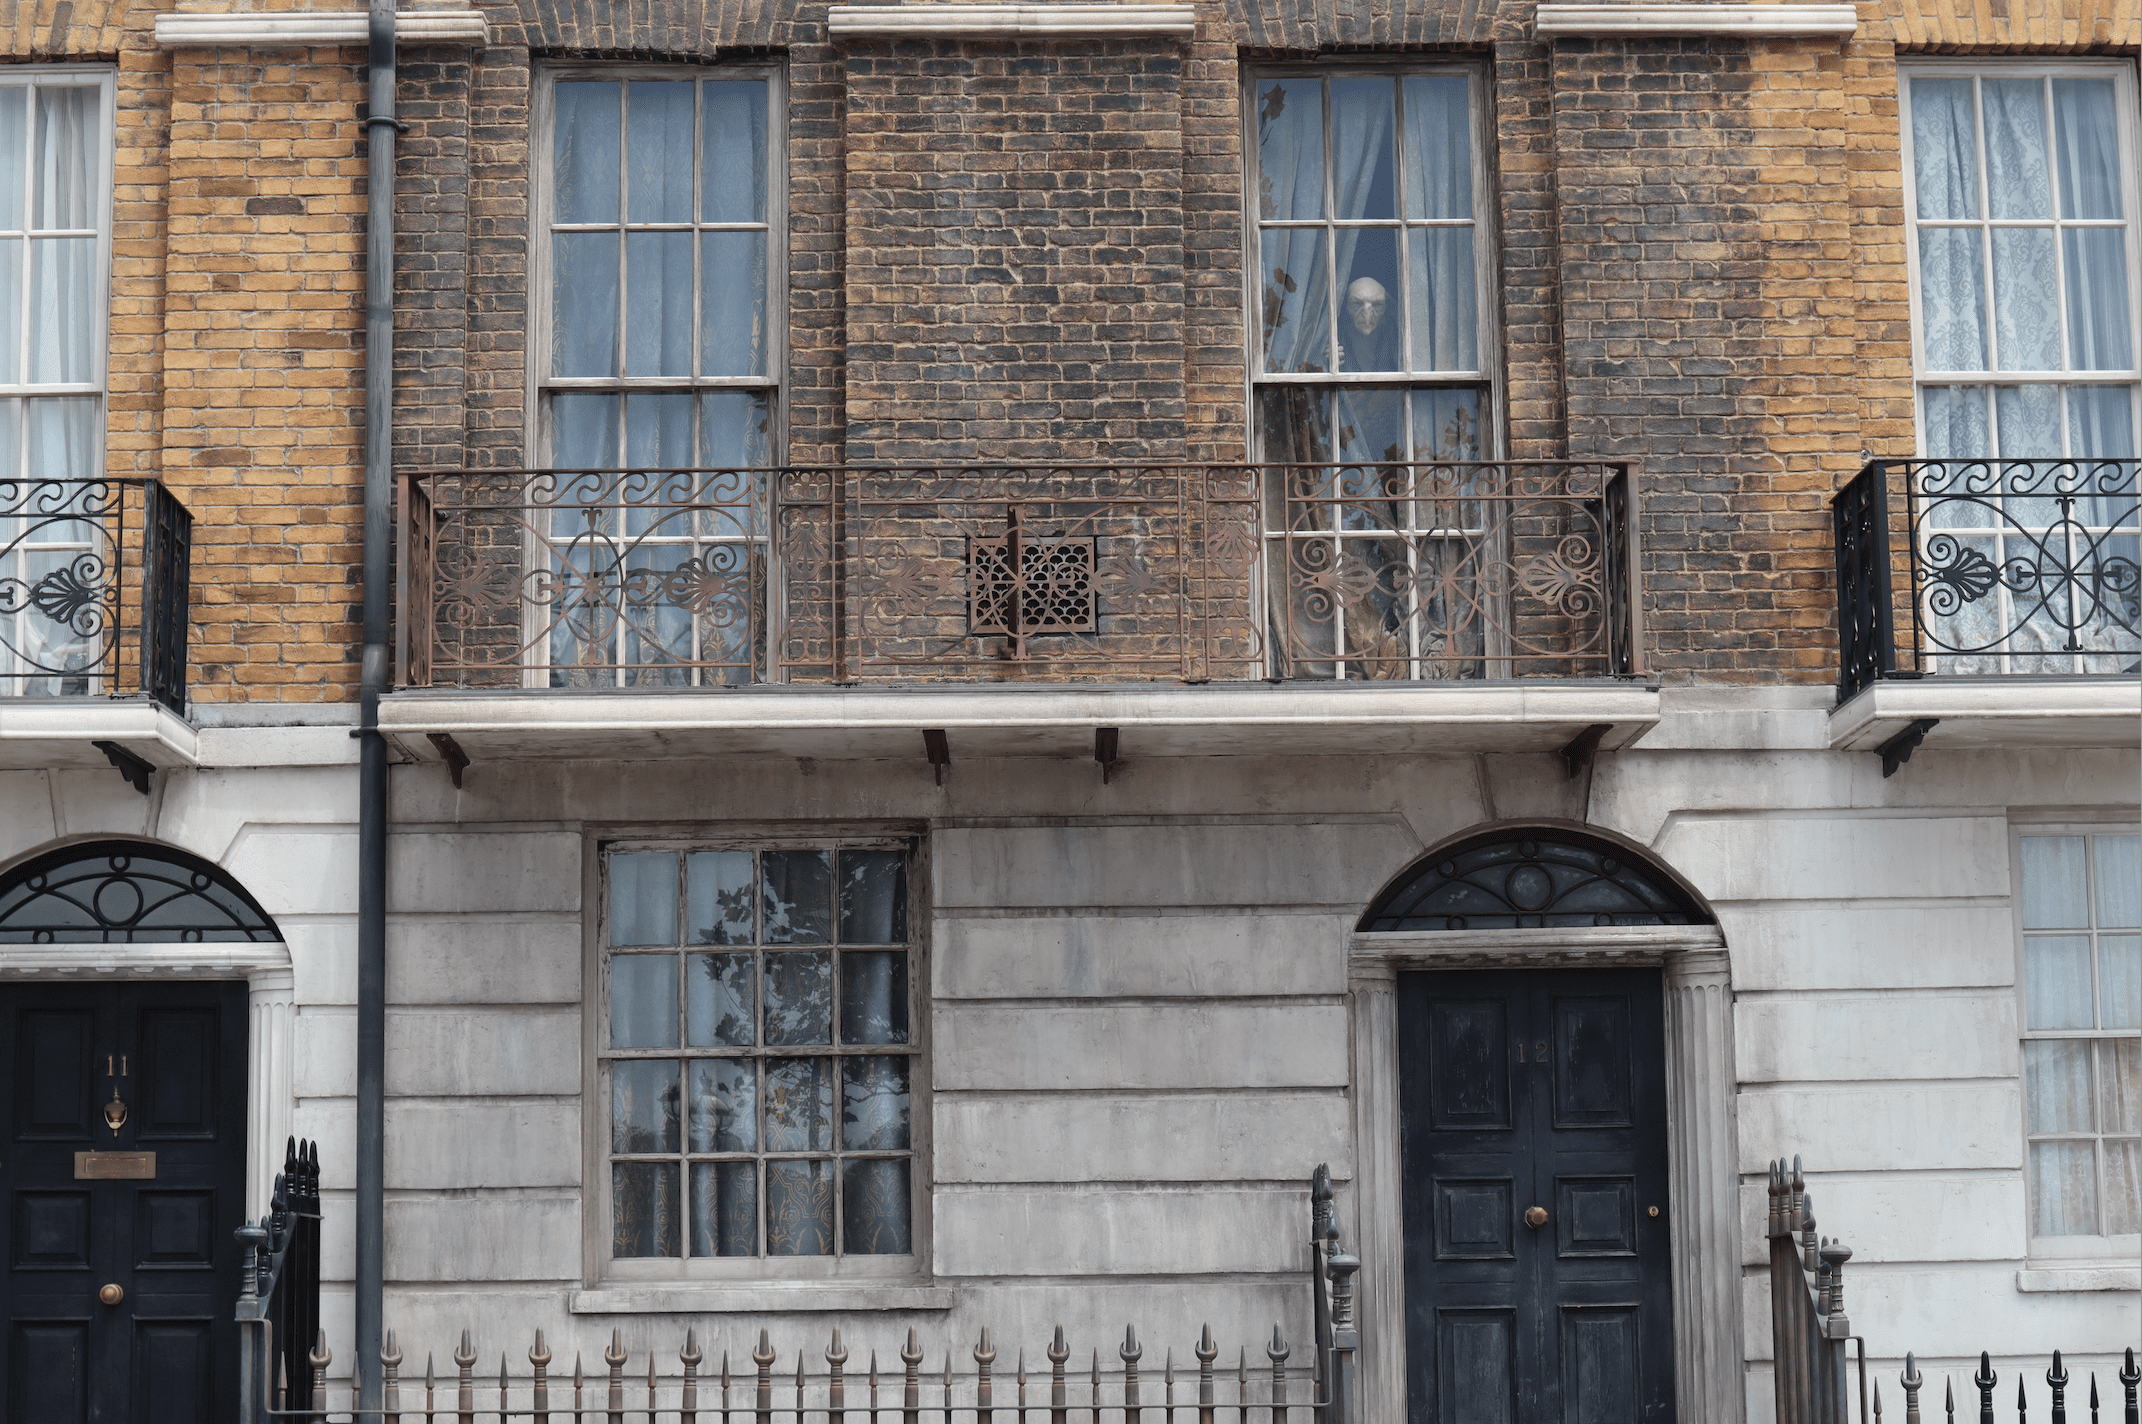 Replica of 12 Grimmauld Place with the house-elf Kreacher looking through a second floor window